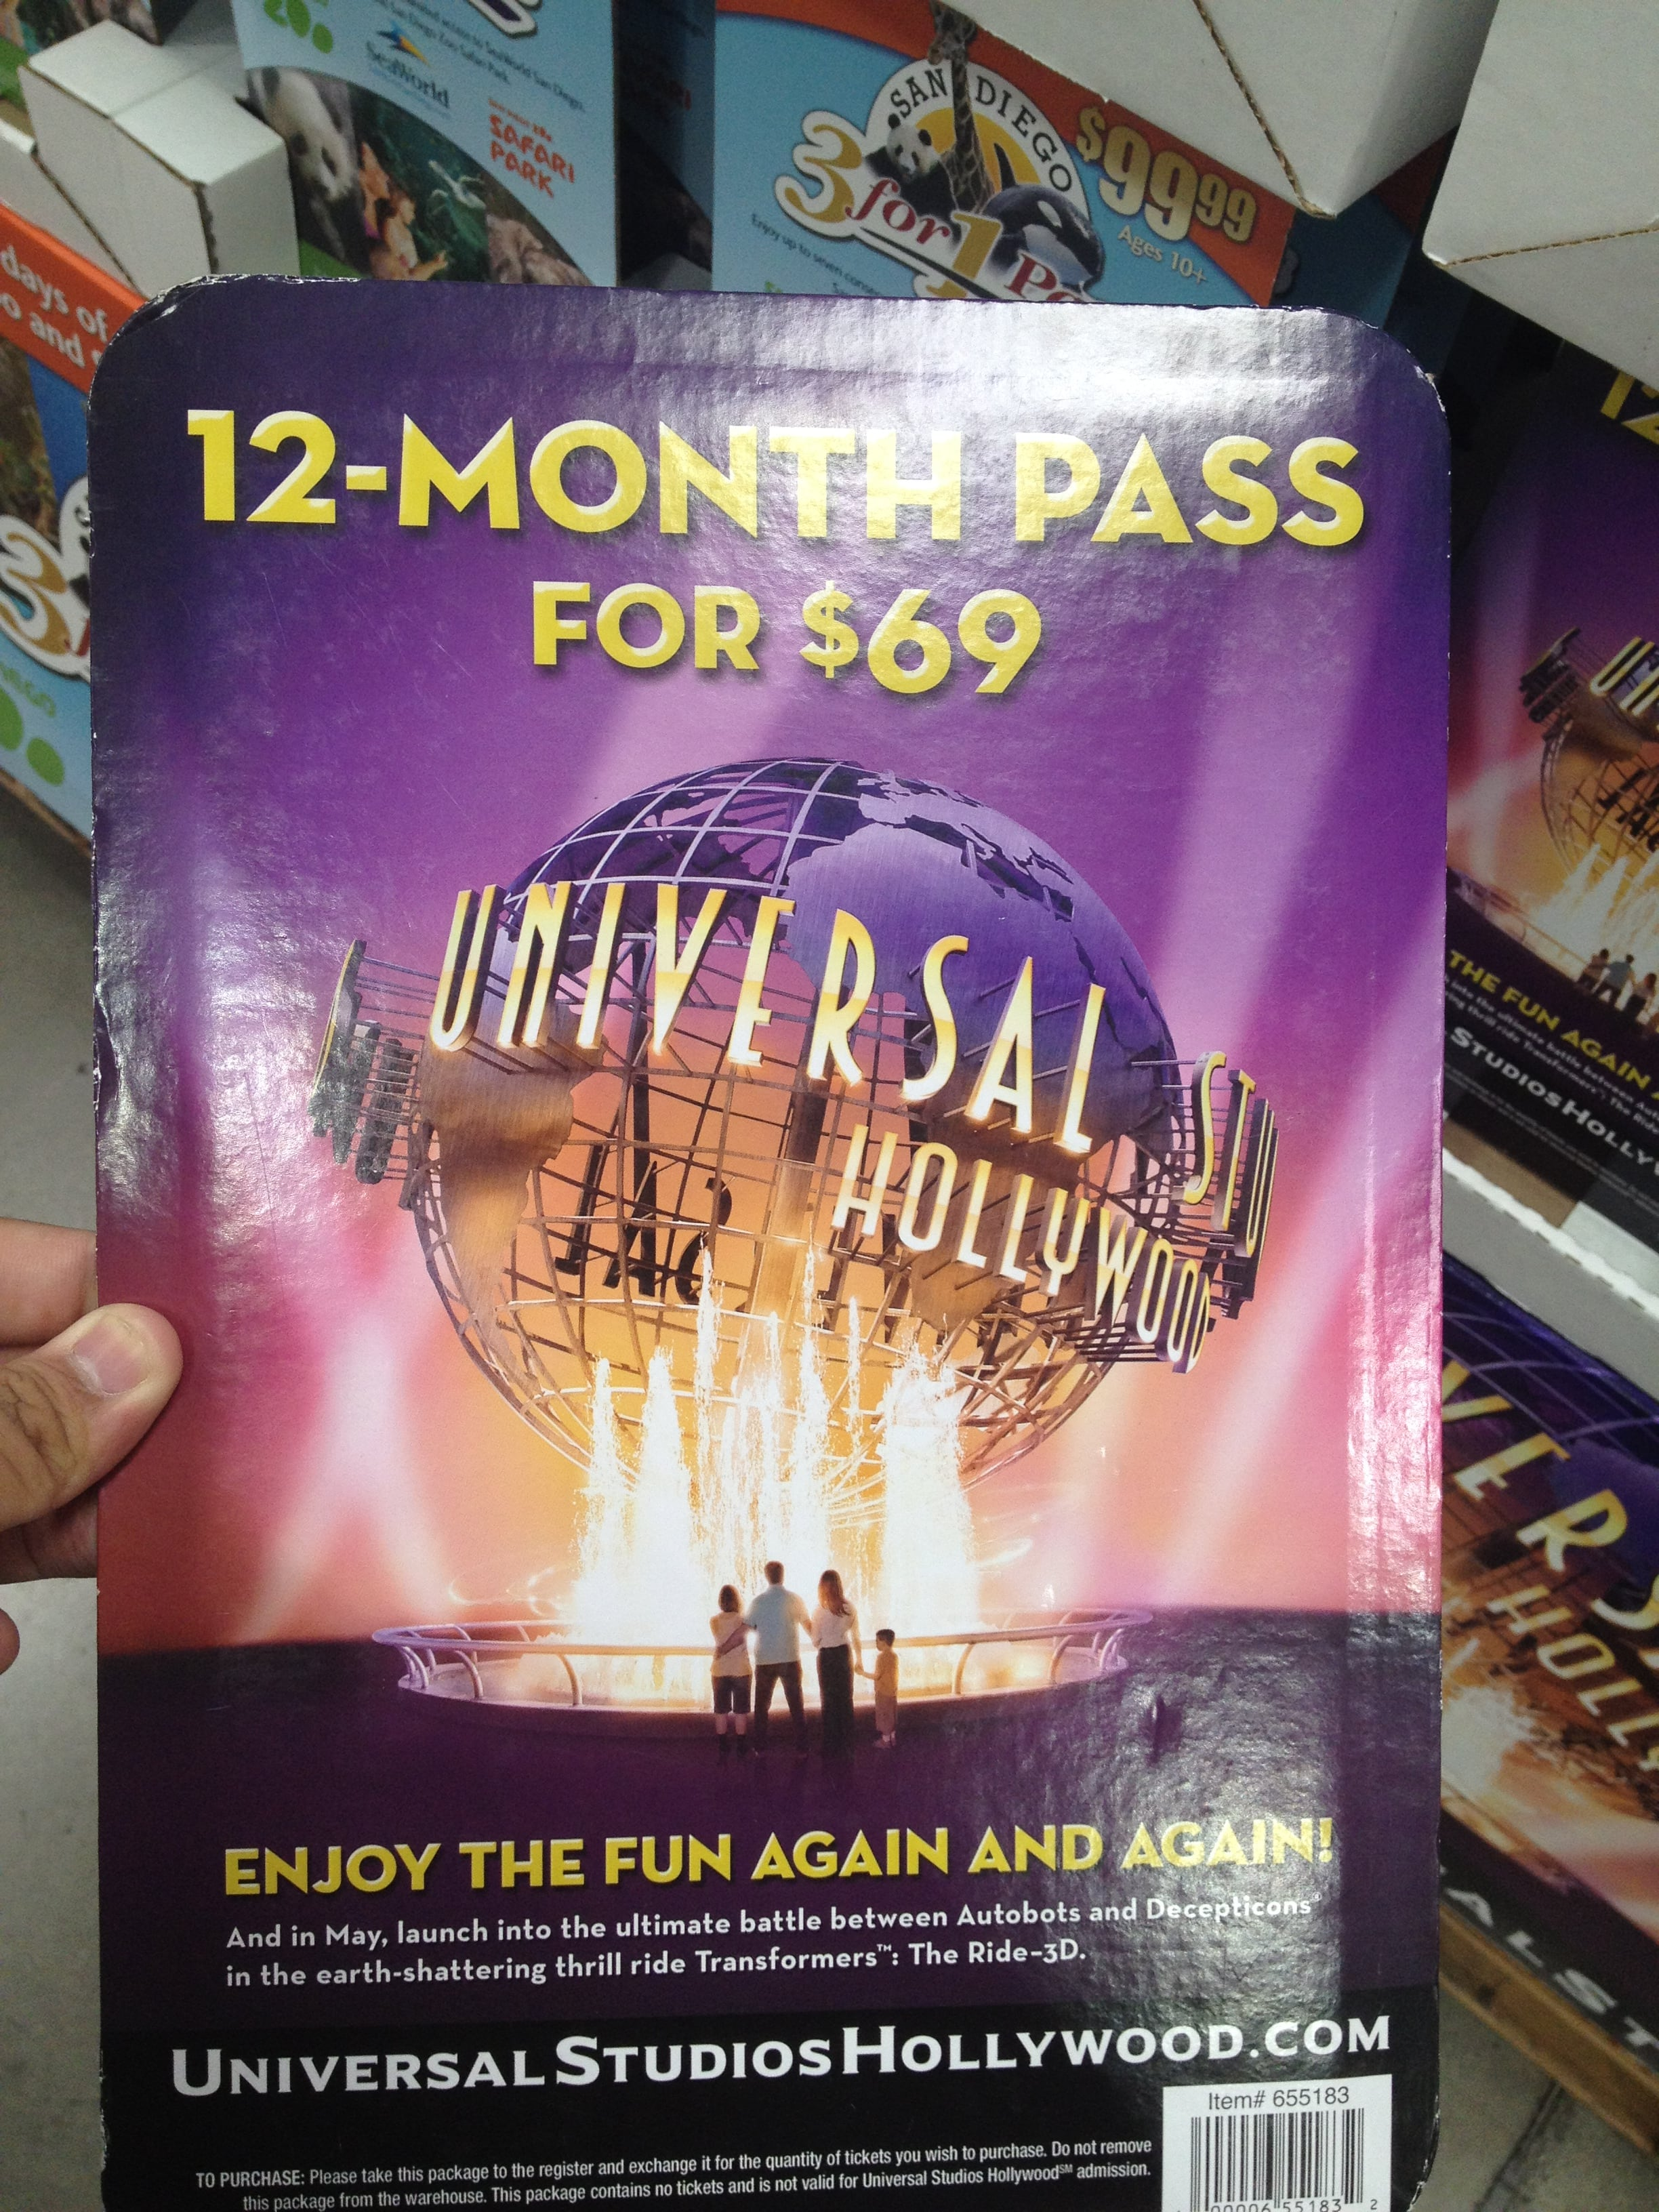 Universal studios hollywood coupons discounts